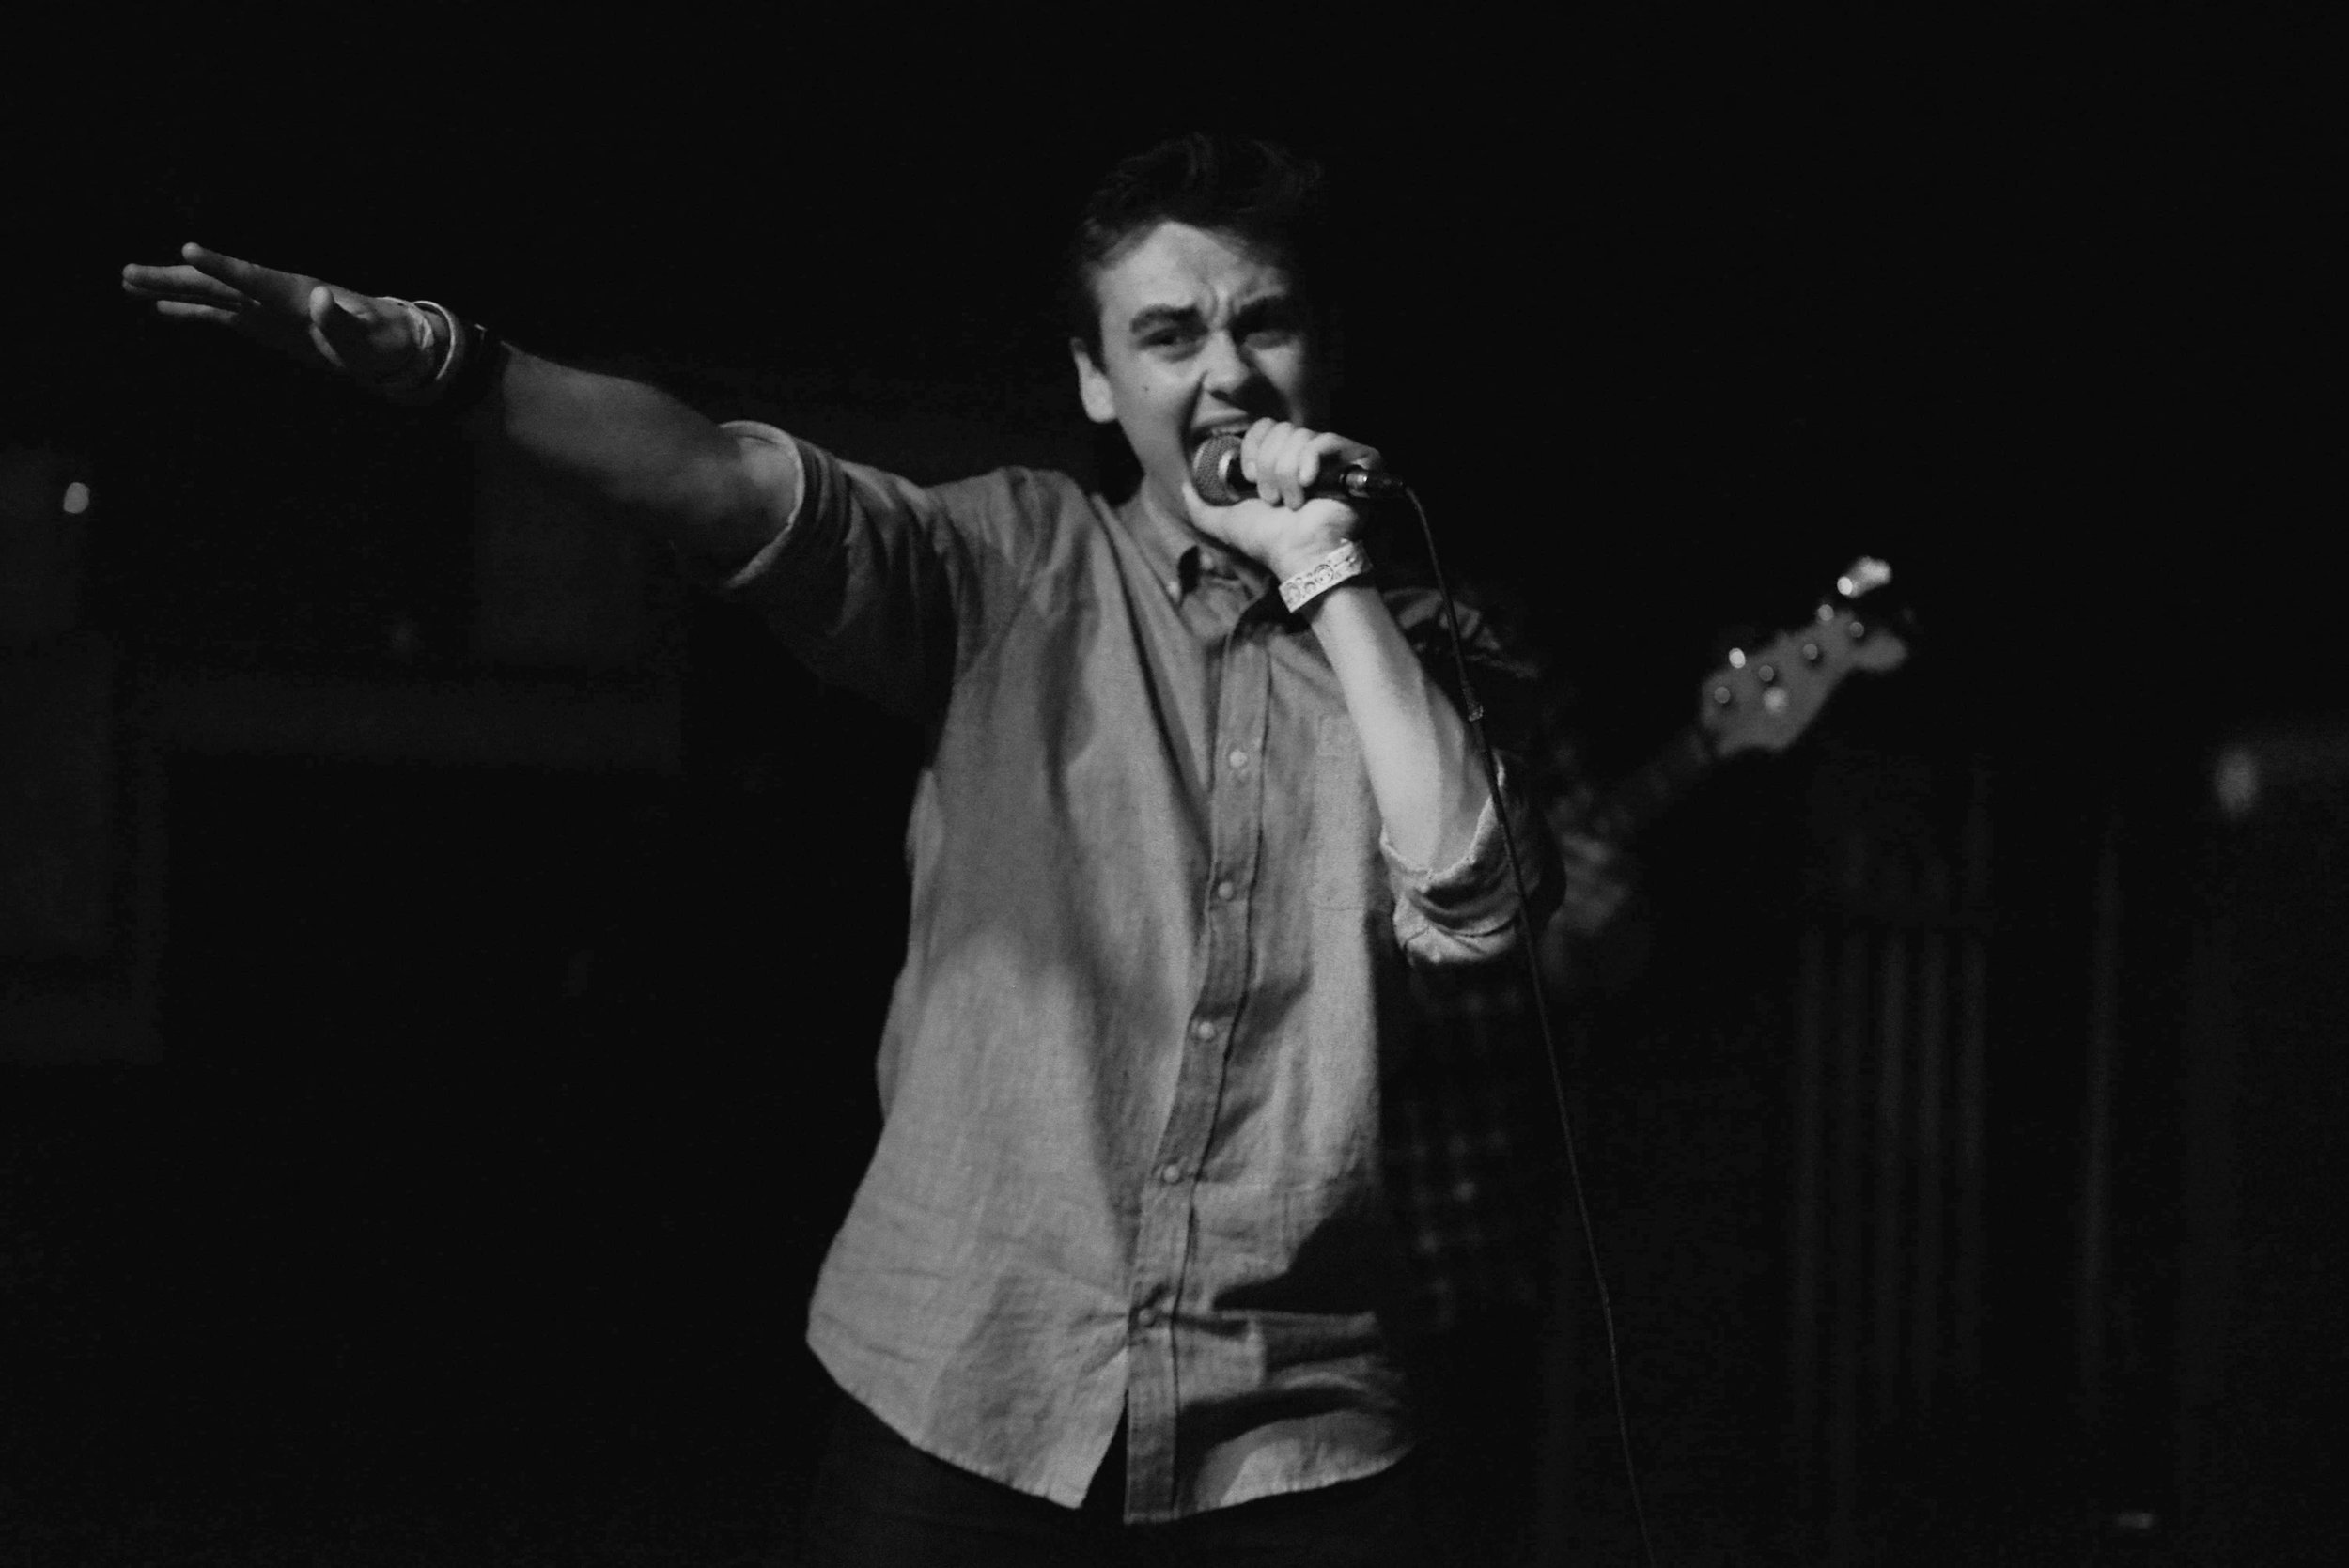 Jack Throwing it Out to the Crowd (Black and White) Better.jpg